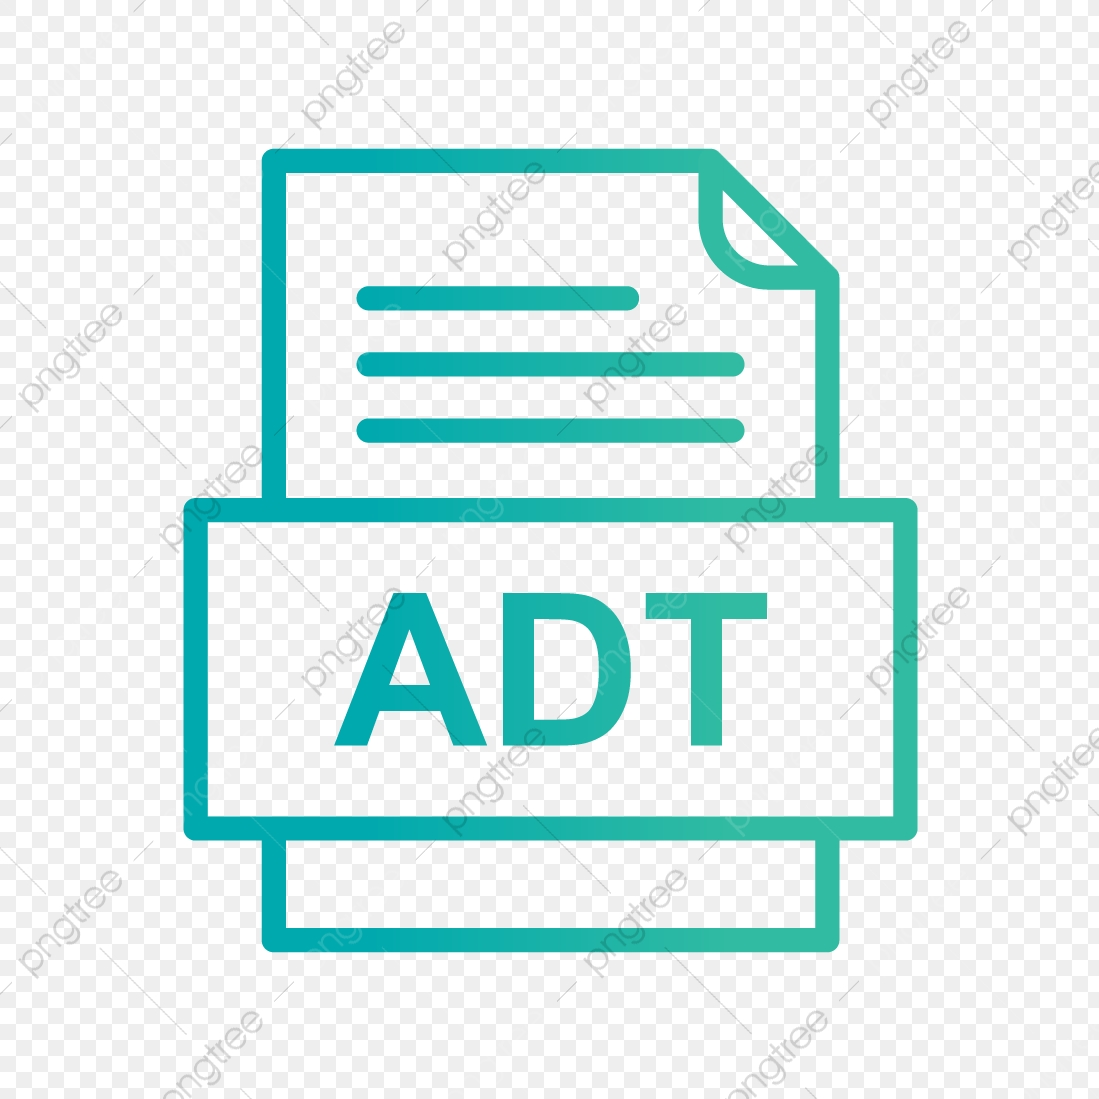 Adt File Document Icon Adt Document File PNG and Vector with 1099x1099